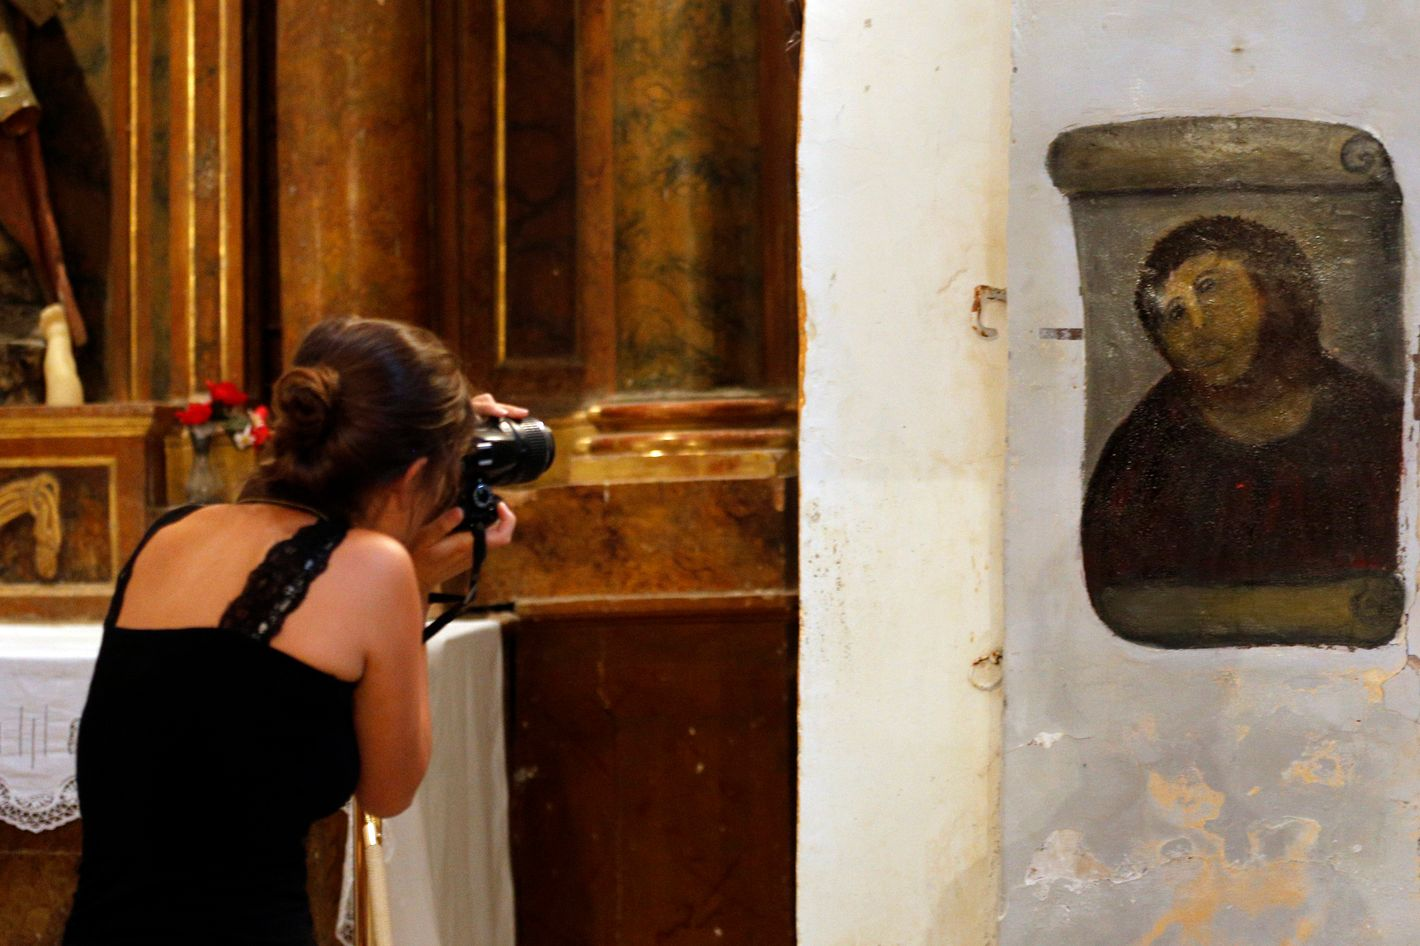 "A woman takes pictures of the deteriorated version of ""Ecce Homo"" by 19th-century painter Elias Garcia Martinez, at the Borja Church in Zaragoza on August 28, 2012. An elderly woman's catastrophic attempt to ""restore"" a century-old oil painting of Christ in a Spanish church has provoked popular uproar, and amusement. Titled ""Ecce Homo"" (Behold the Man), the original was no masterpiece, painted in two hours in 1910 by a certain Elias Garcia Martinez directly on a column in the church at Borja, northeastern Spain. The well-intentioned but ham-fisted amateur artist, in her 80s, took it upon herself to fill in the patches and paint over the original work, which depicted Christ crowned with thorns, his sorrowful gaze lifted to heaven."